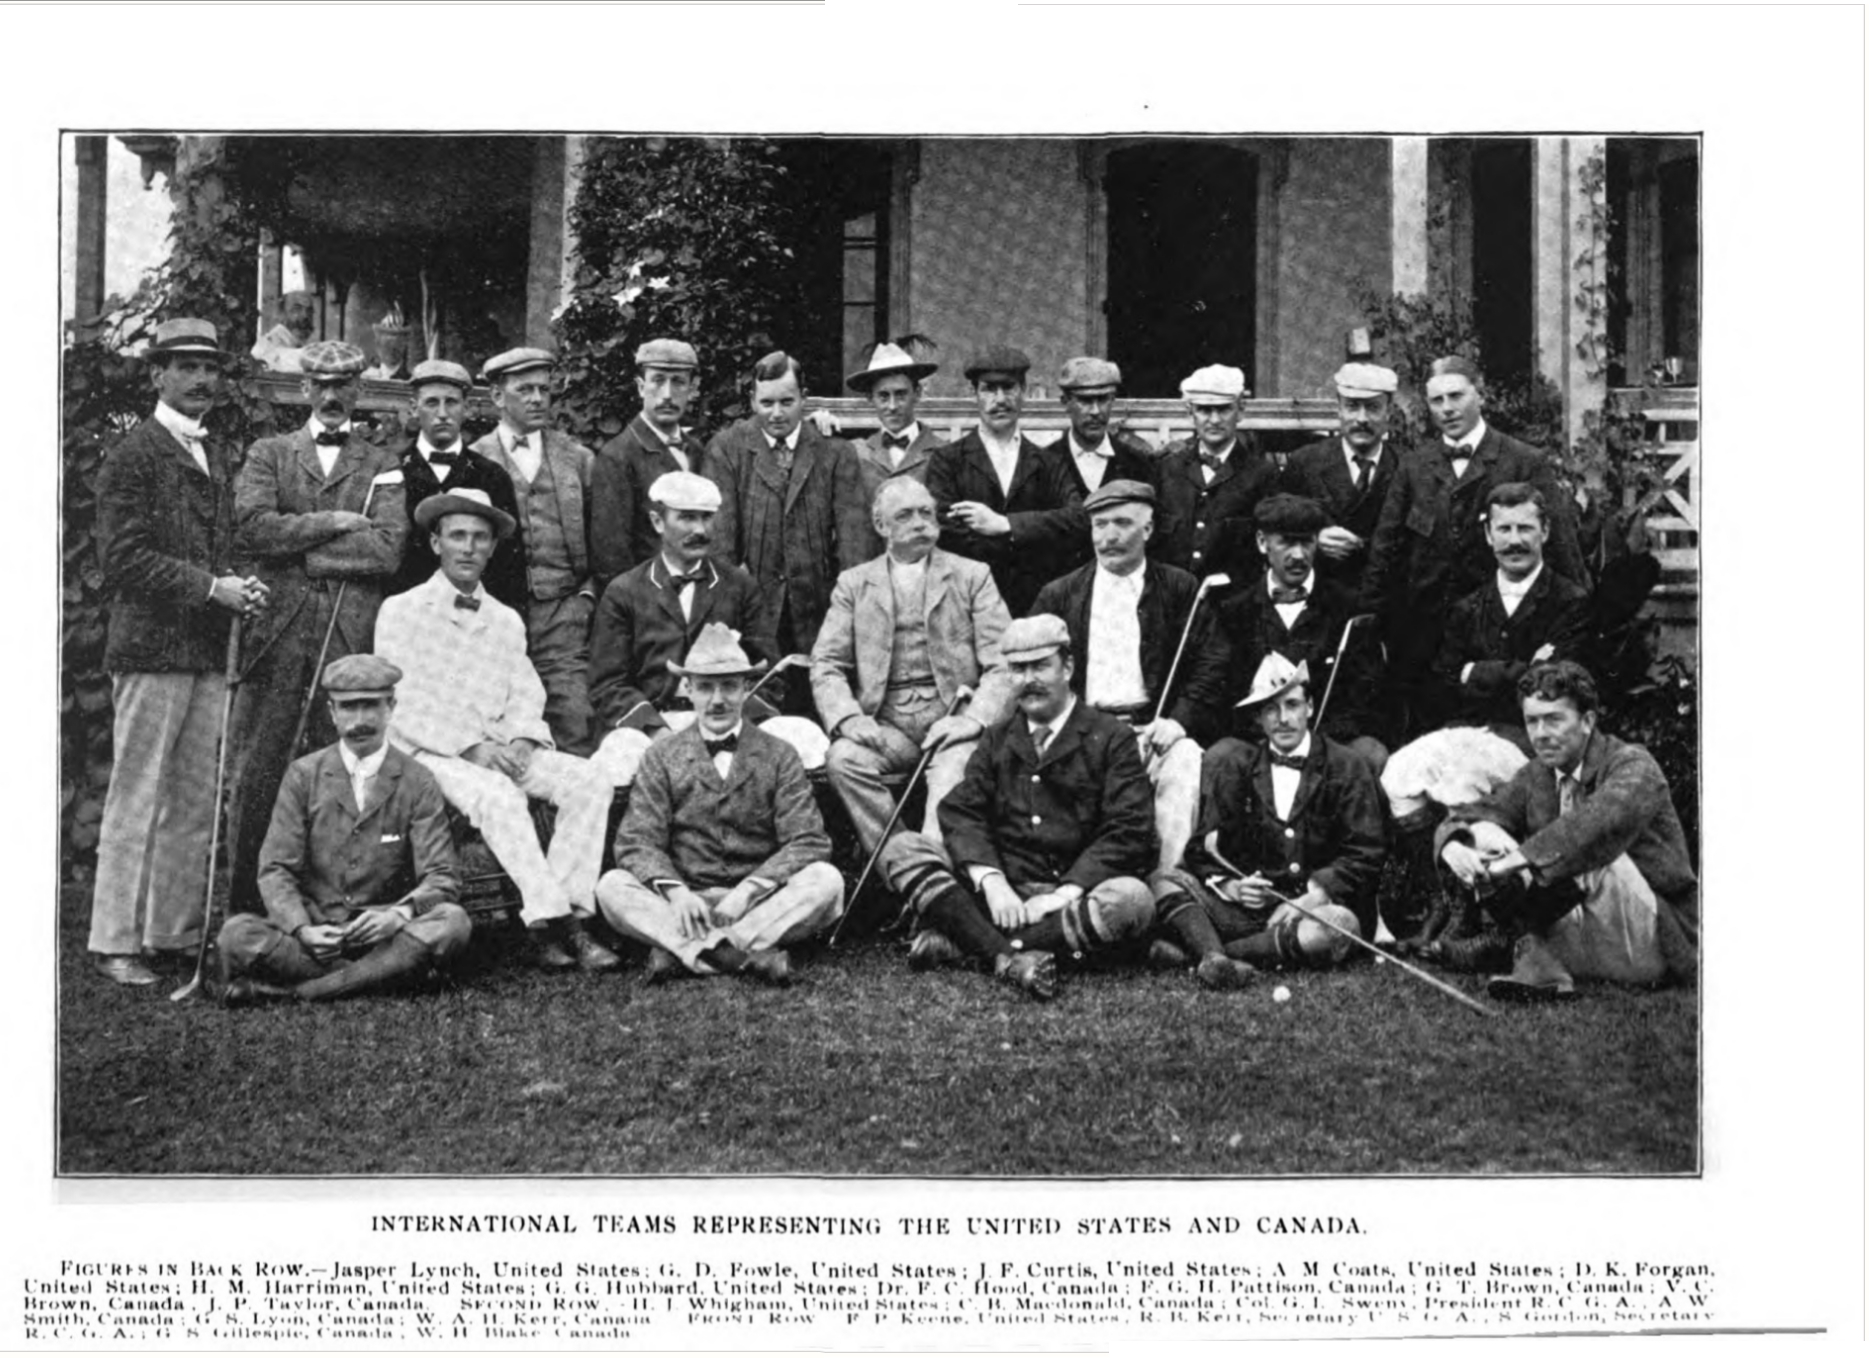 Golf, Vol. III, No. 1, July, 1898 International Team 262